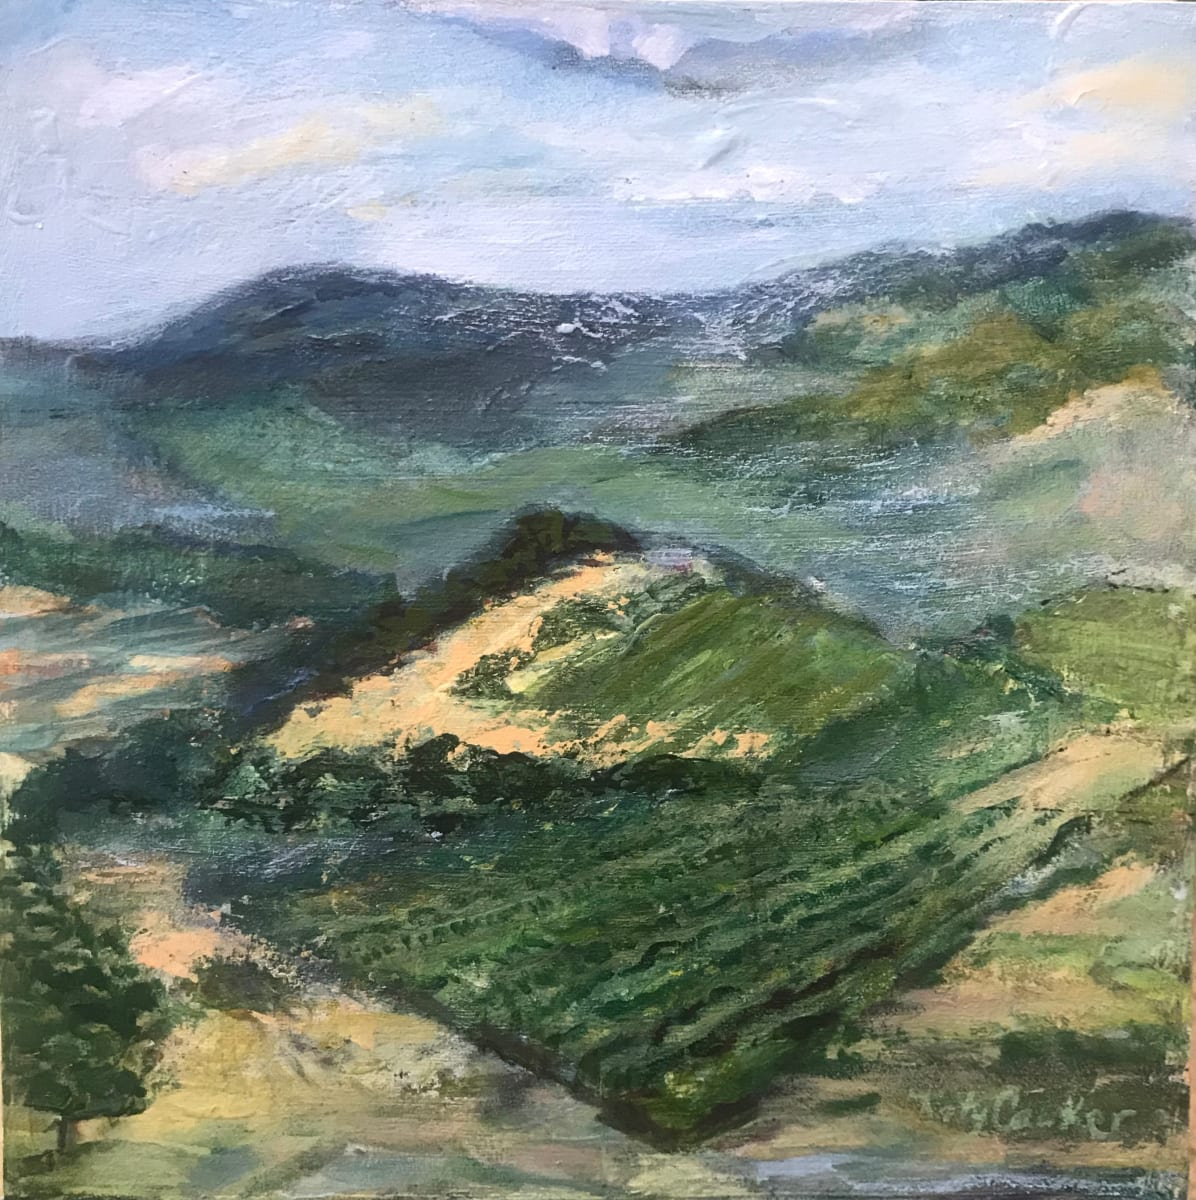 652-Carpenter Hill Vineyards/ Selected for a Purchase Award at OSU Art About Agricultural 2020